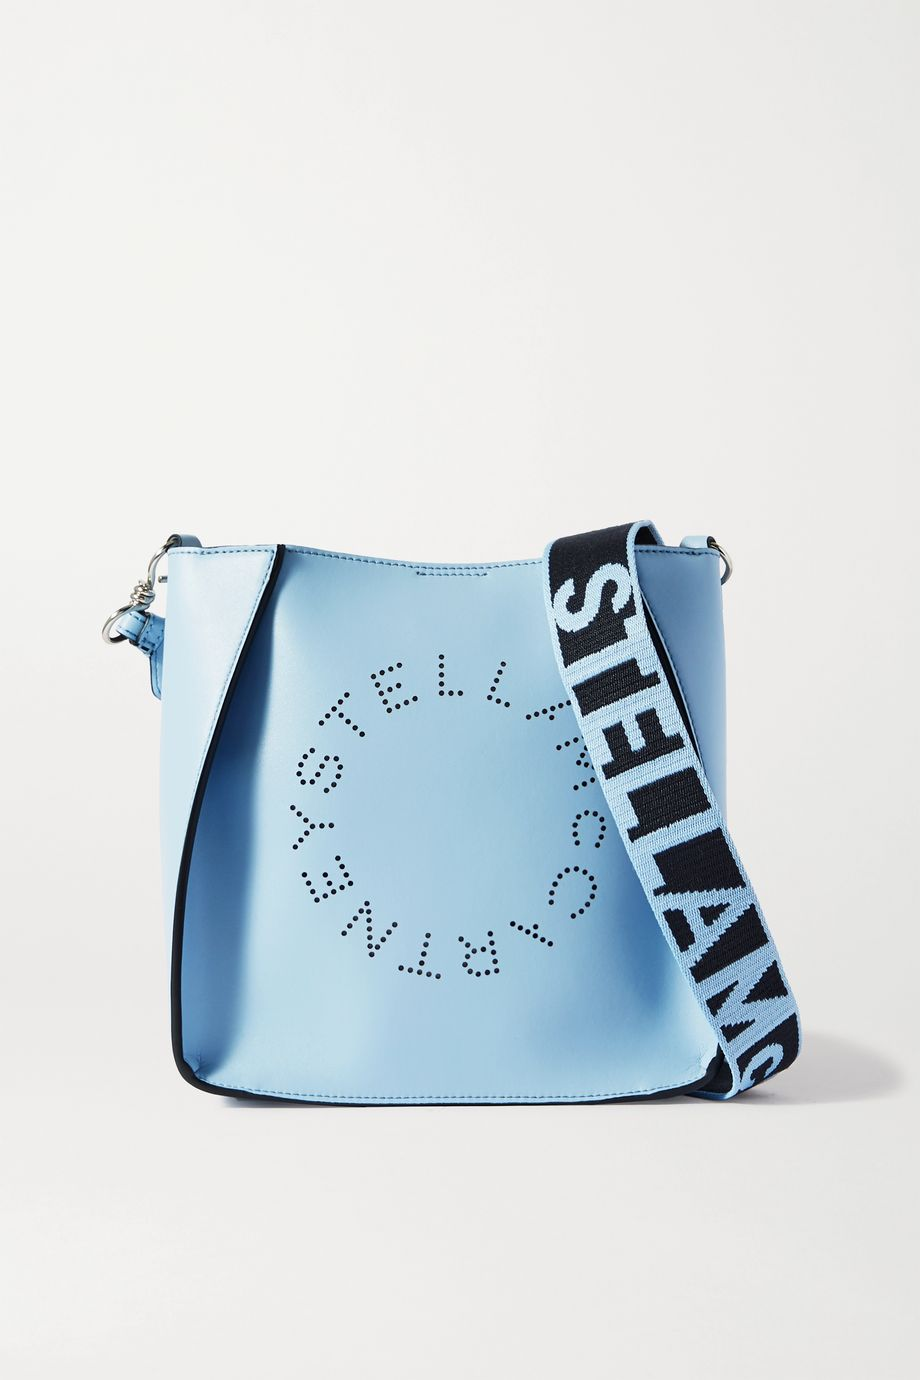 Stella McCartney 穿孔植物性皮革单肩包